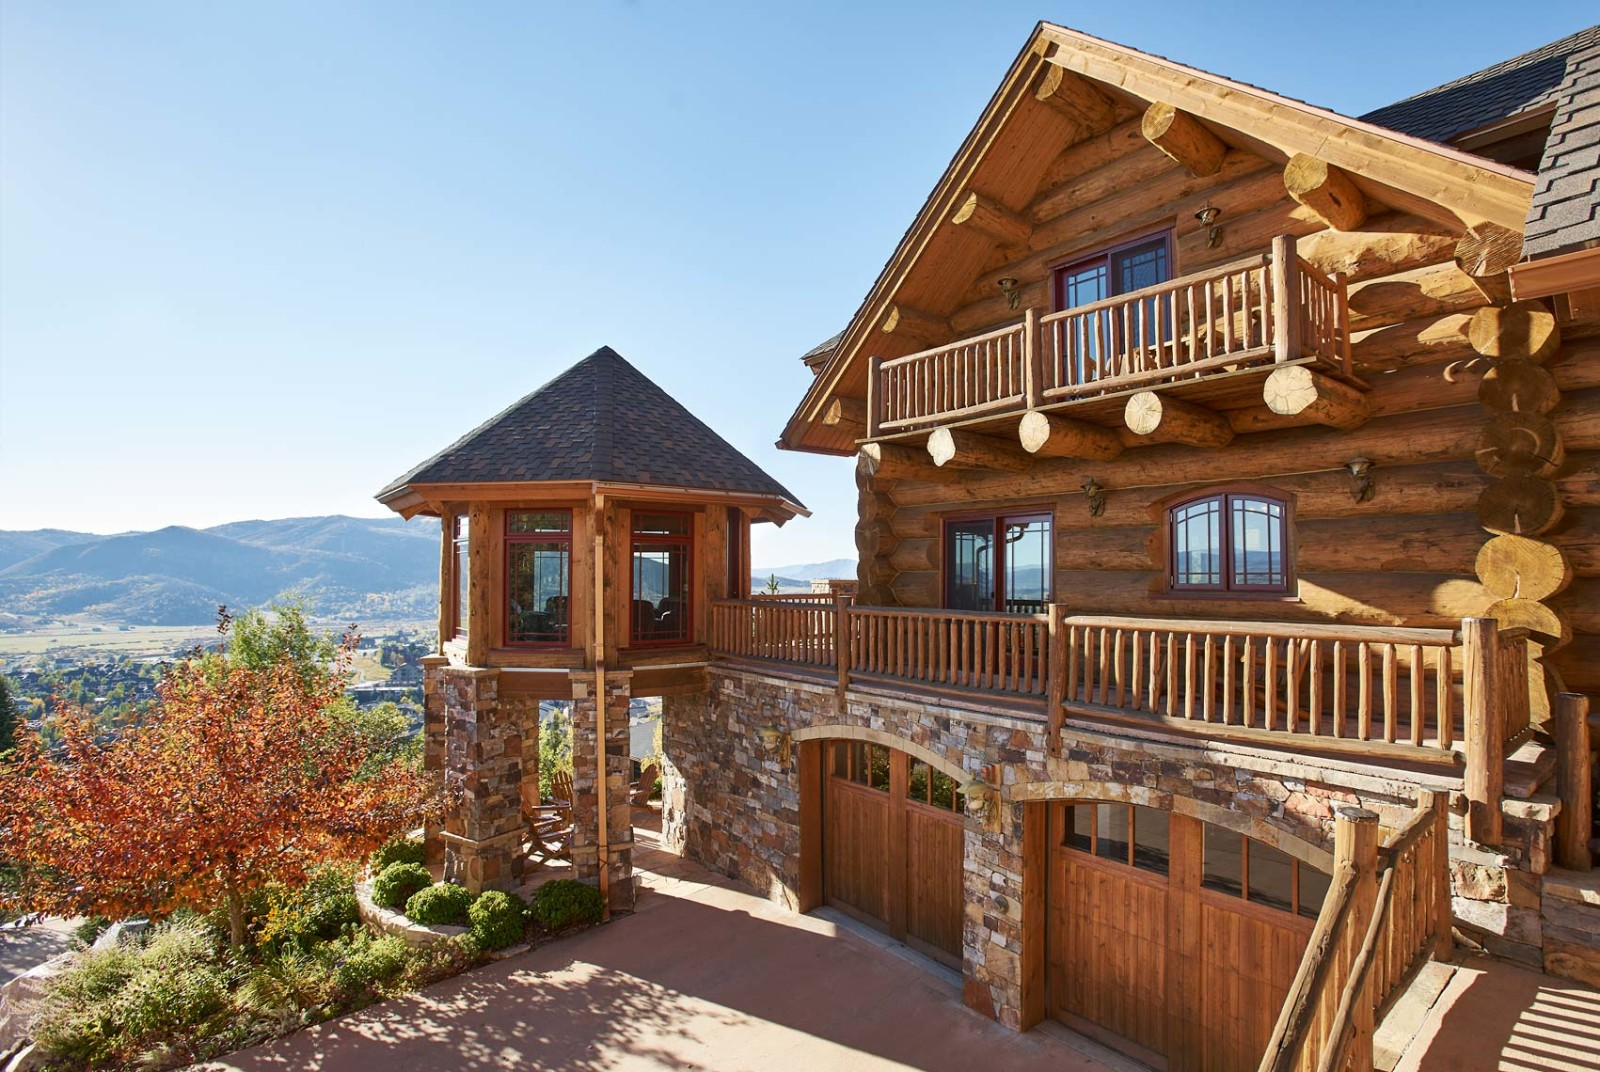 House Of The Week Ski Into This Log Home And Catch The Sunset